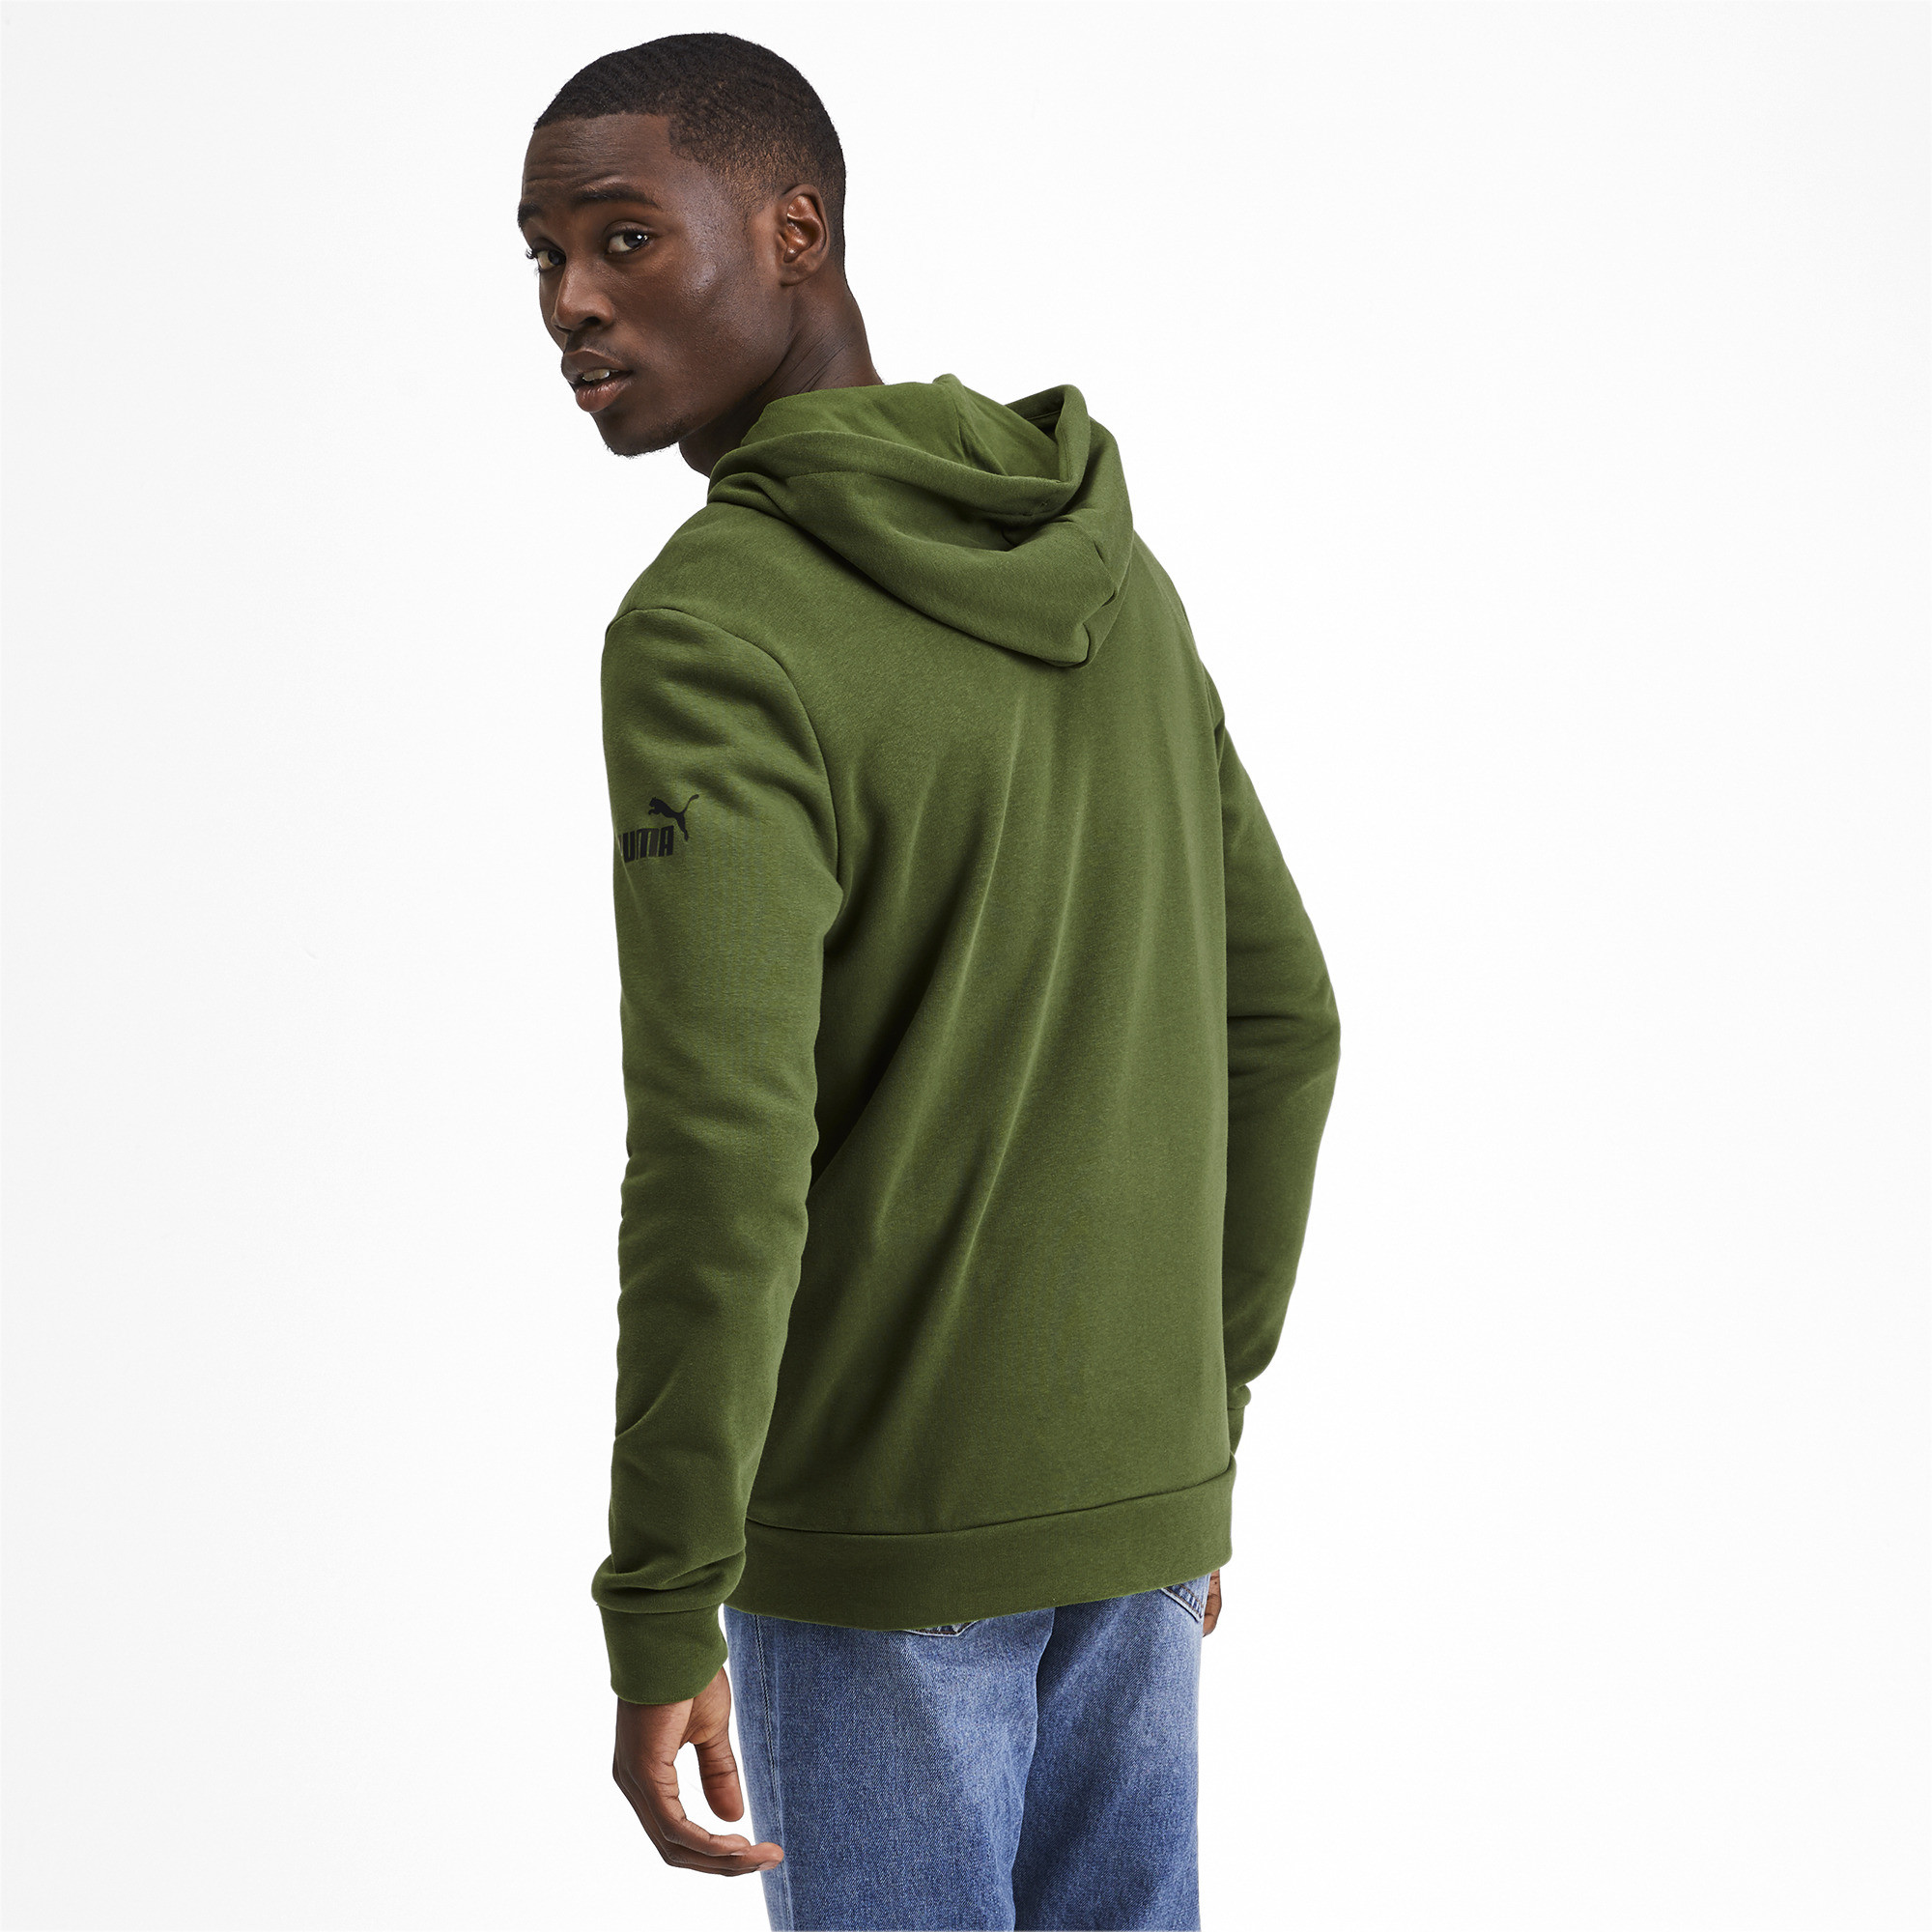 PUMA-Amplified-Men-039-s-Hooded-Jacket-Men-Sweat-Basics thumbnail 19